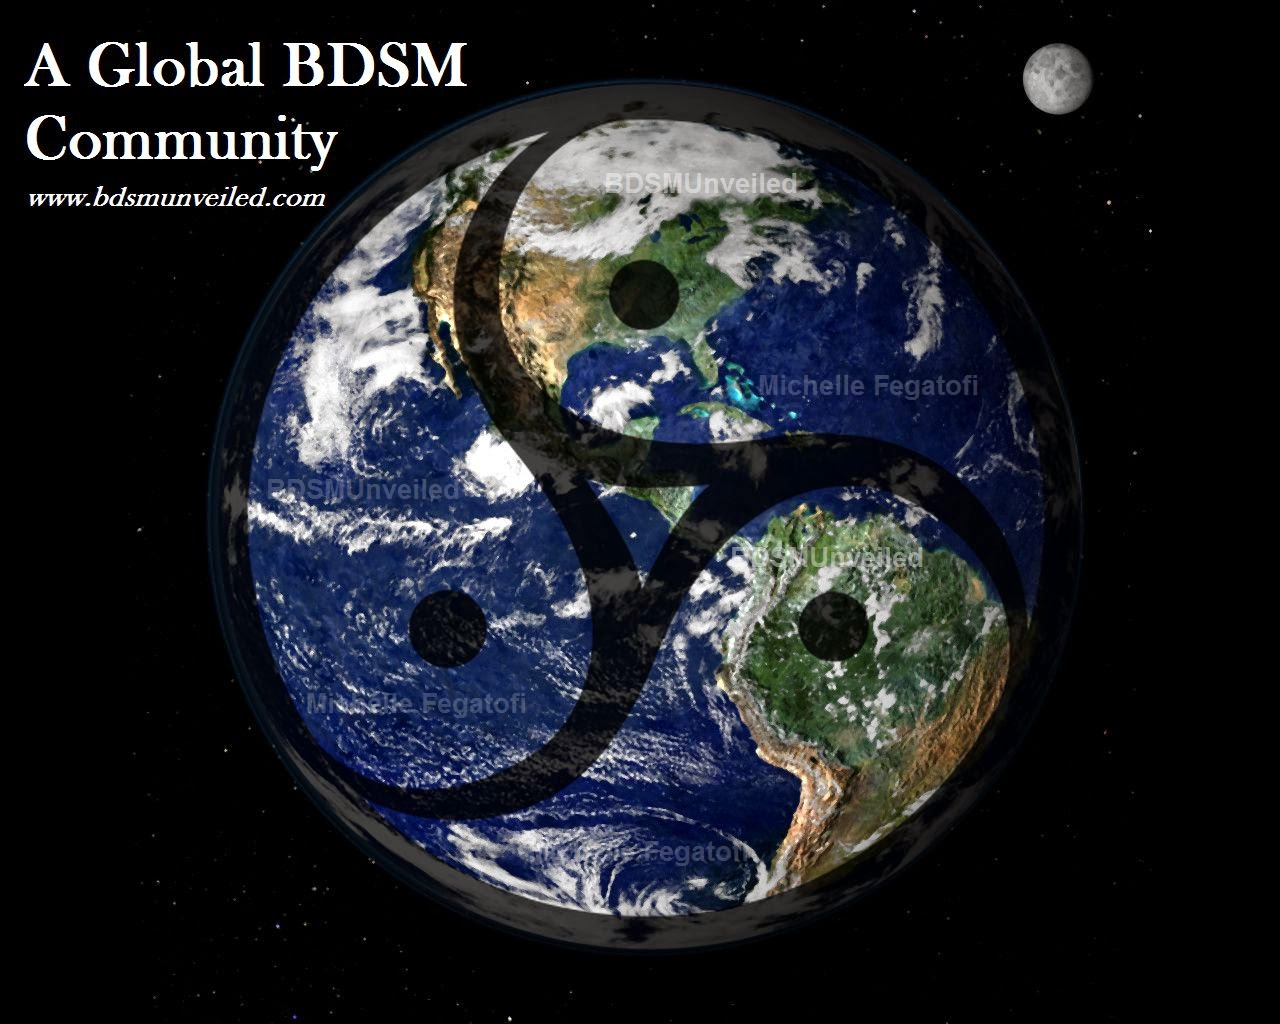 Tolerant Global BDSM Community